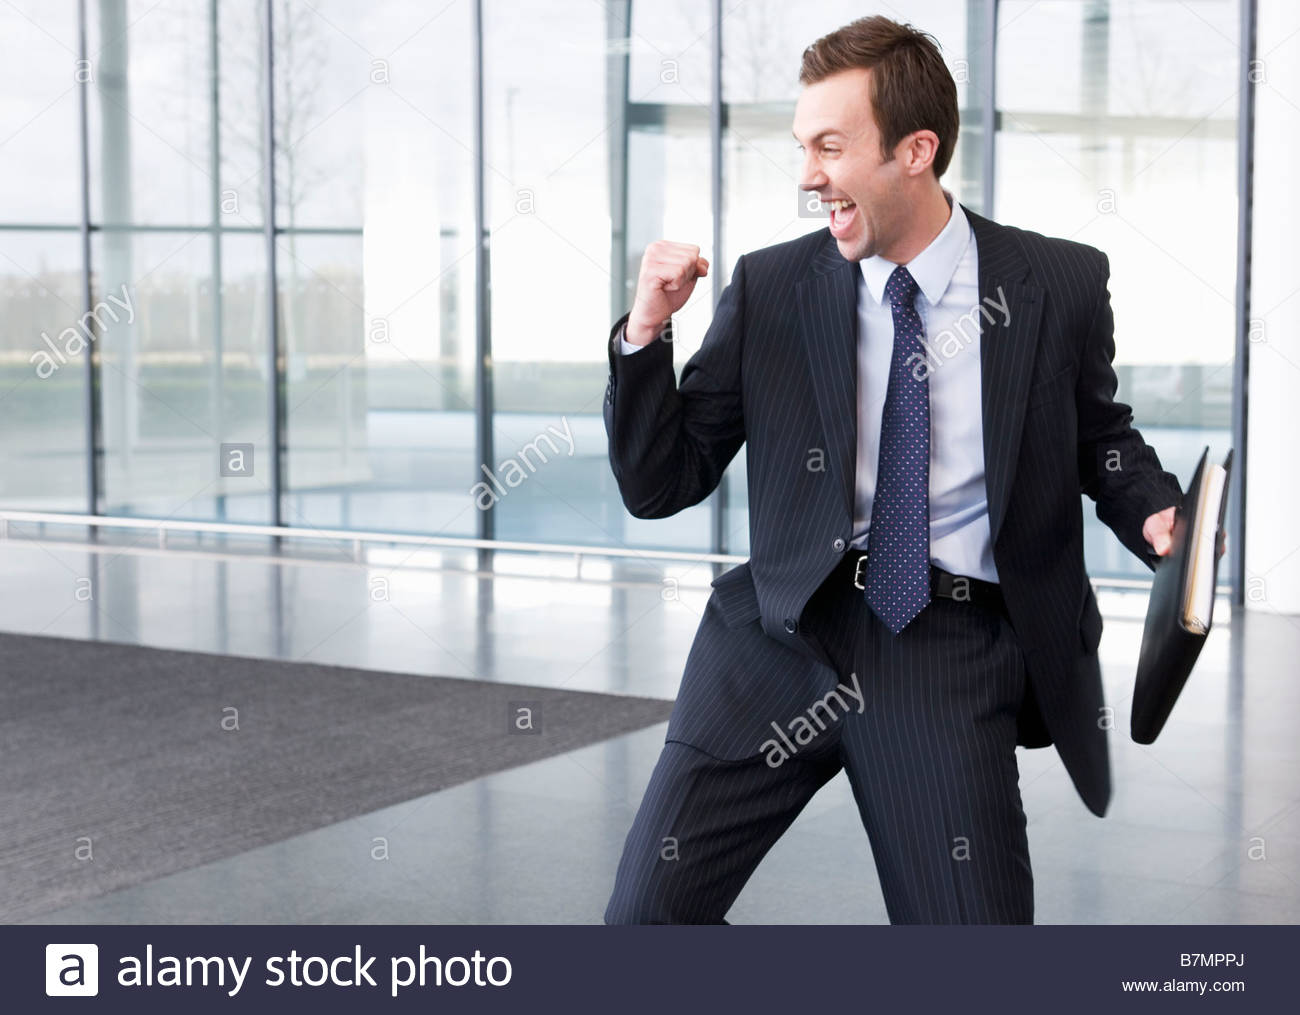 A successful job applicant or businessman making a triumphal gesture - Stock Image